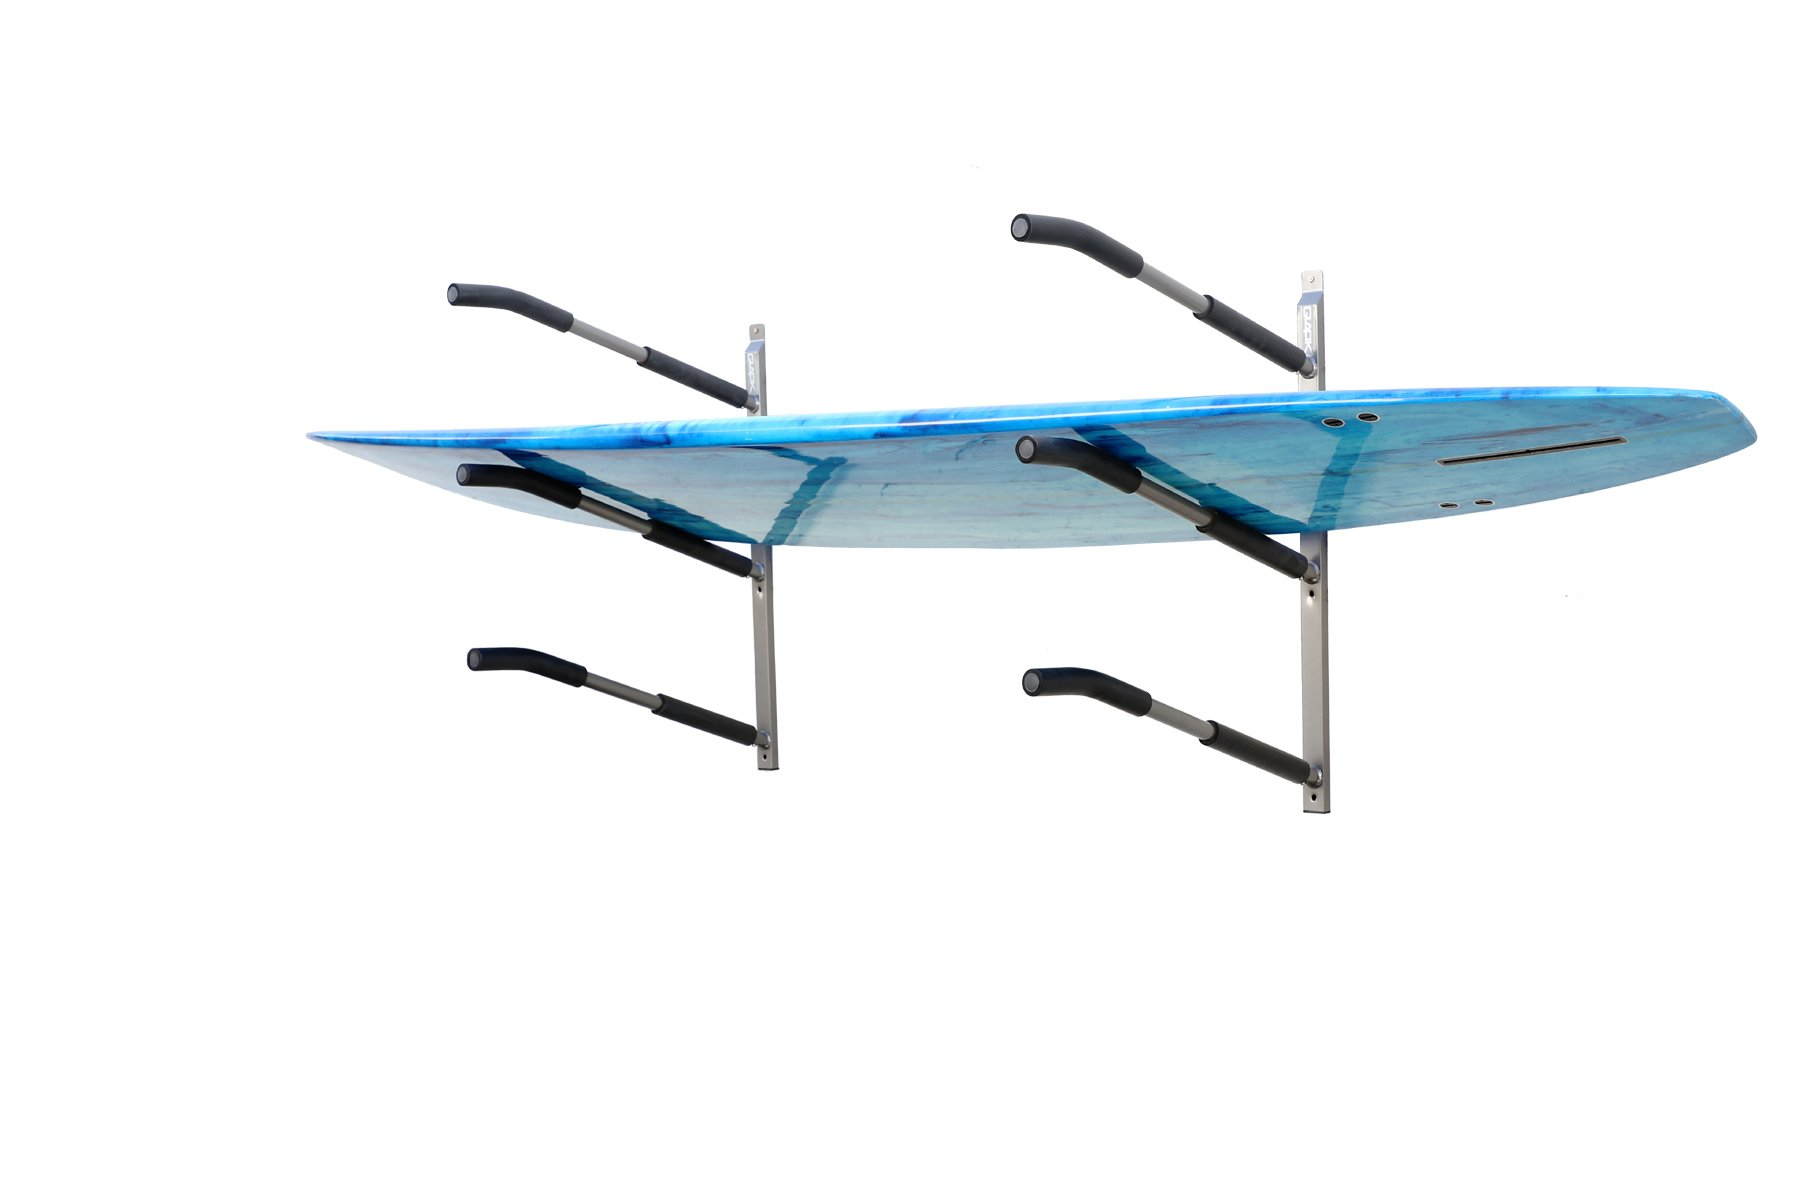 Glacik Universal Wall Mount Rack Storage with Padded Arms for 3 SUP Paddle Boards by SPAREHAND